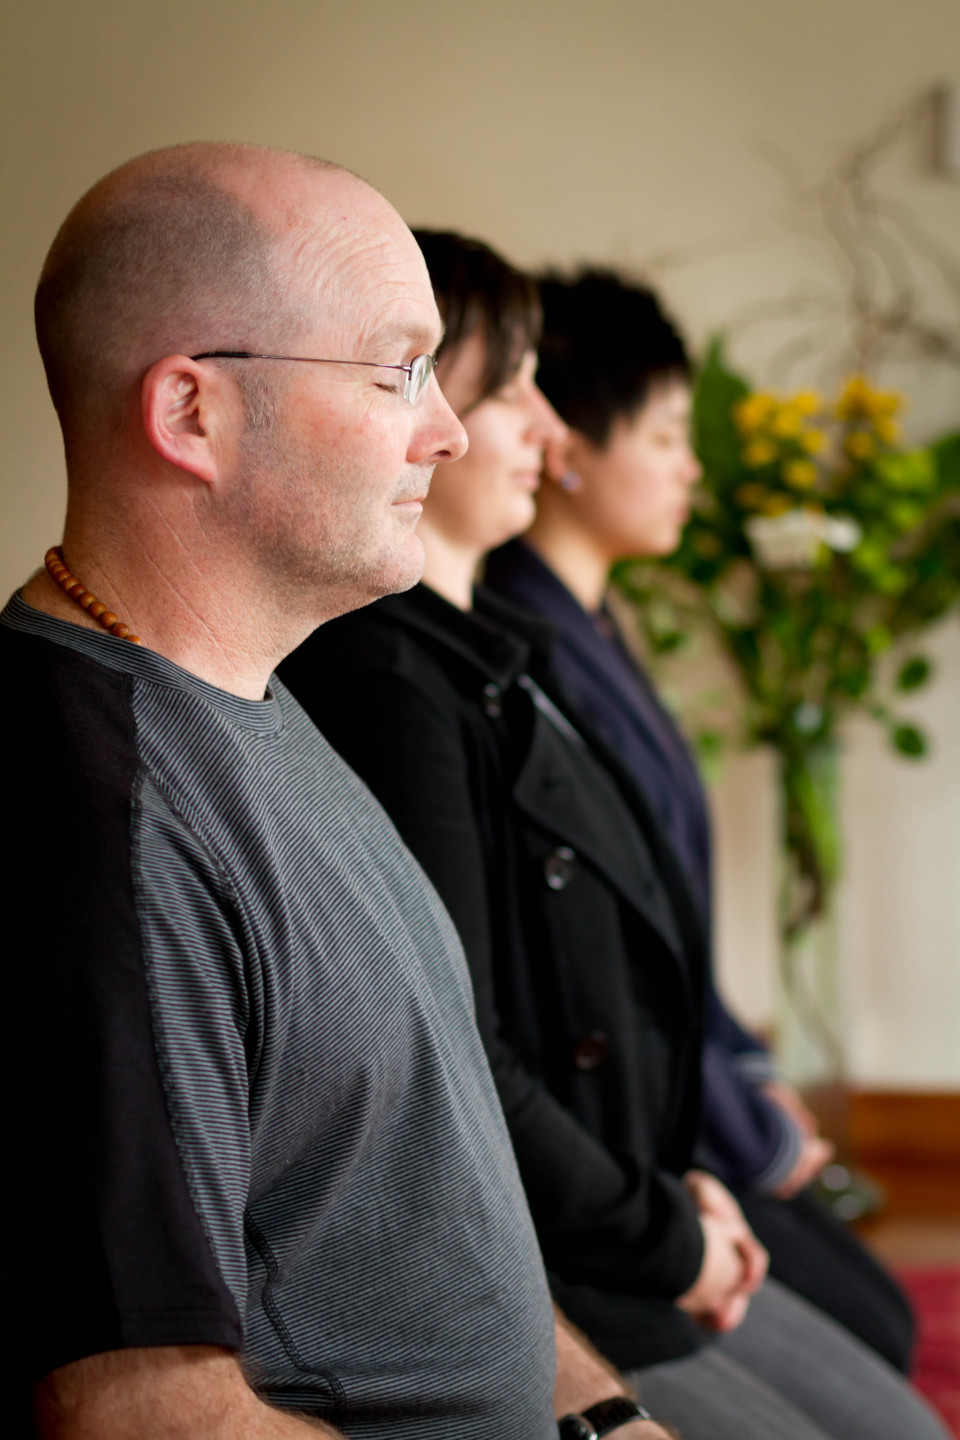 Group of meditators